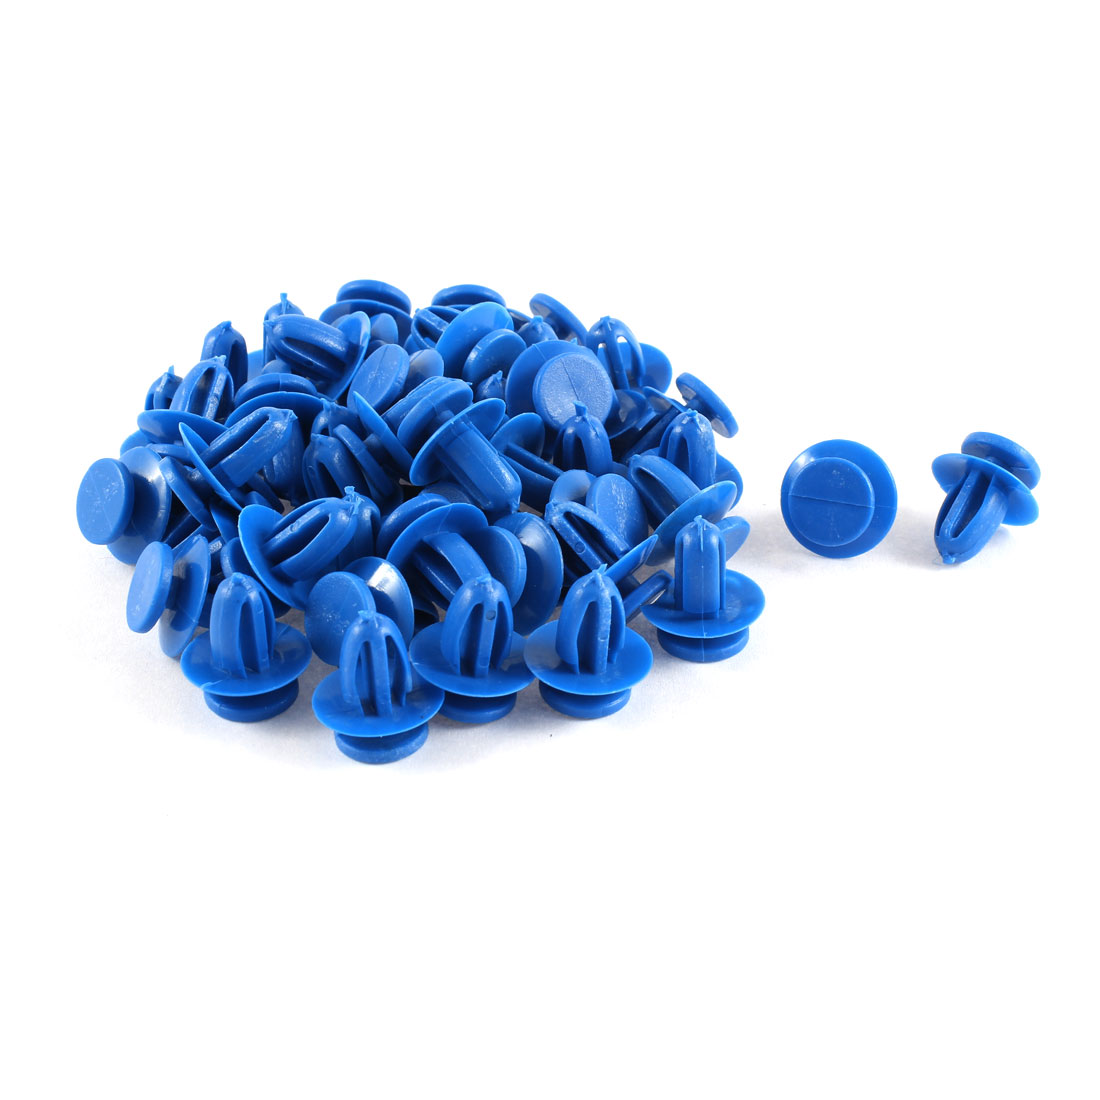 50 Pcs Blue Plastic Push in Fasteners Rivets Fender Clips 9mm Hole for Toyota